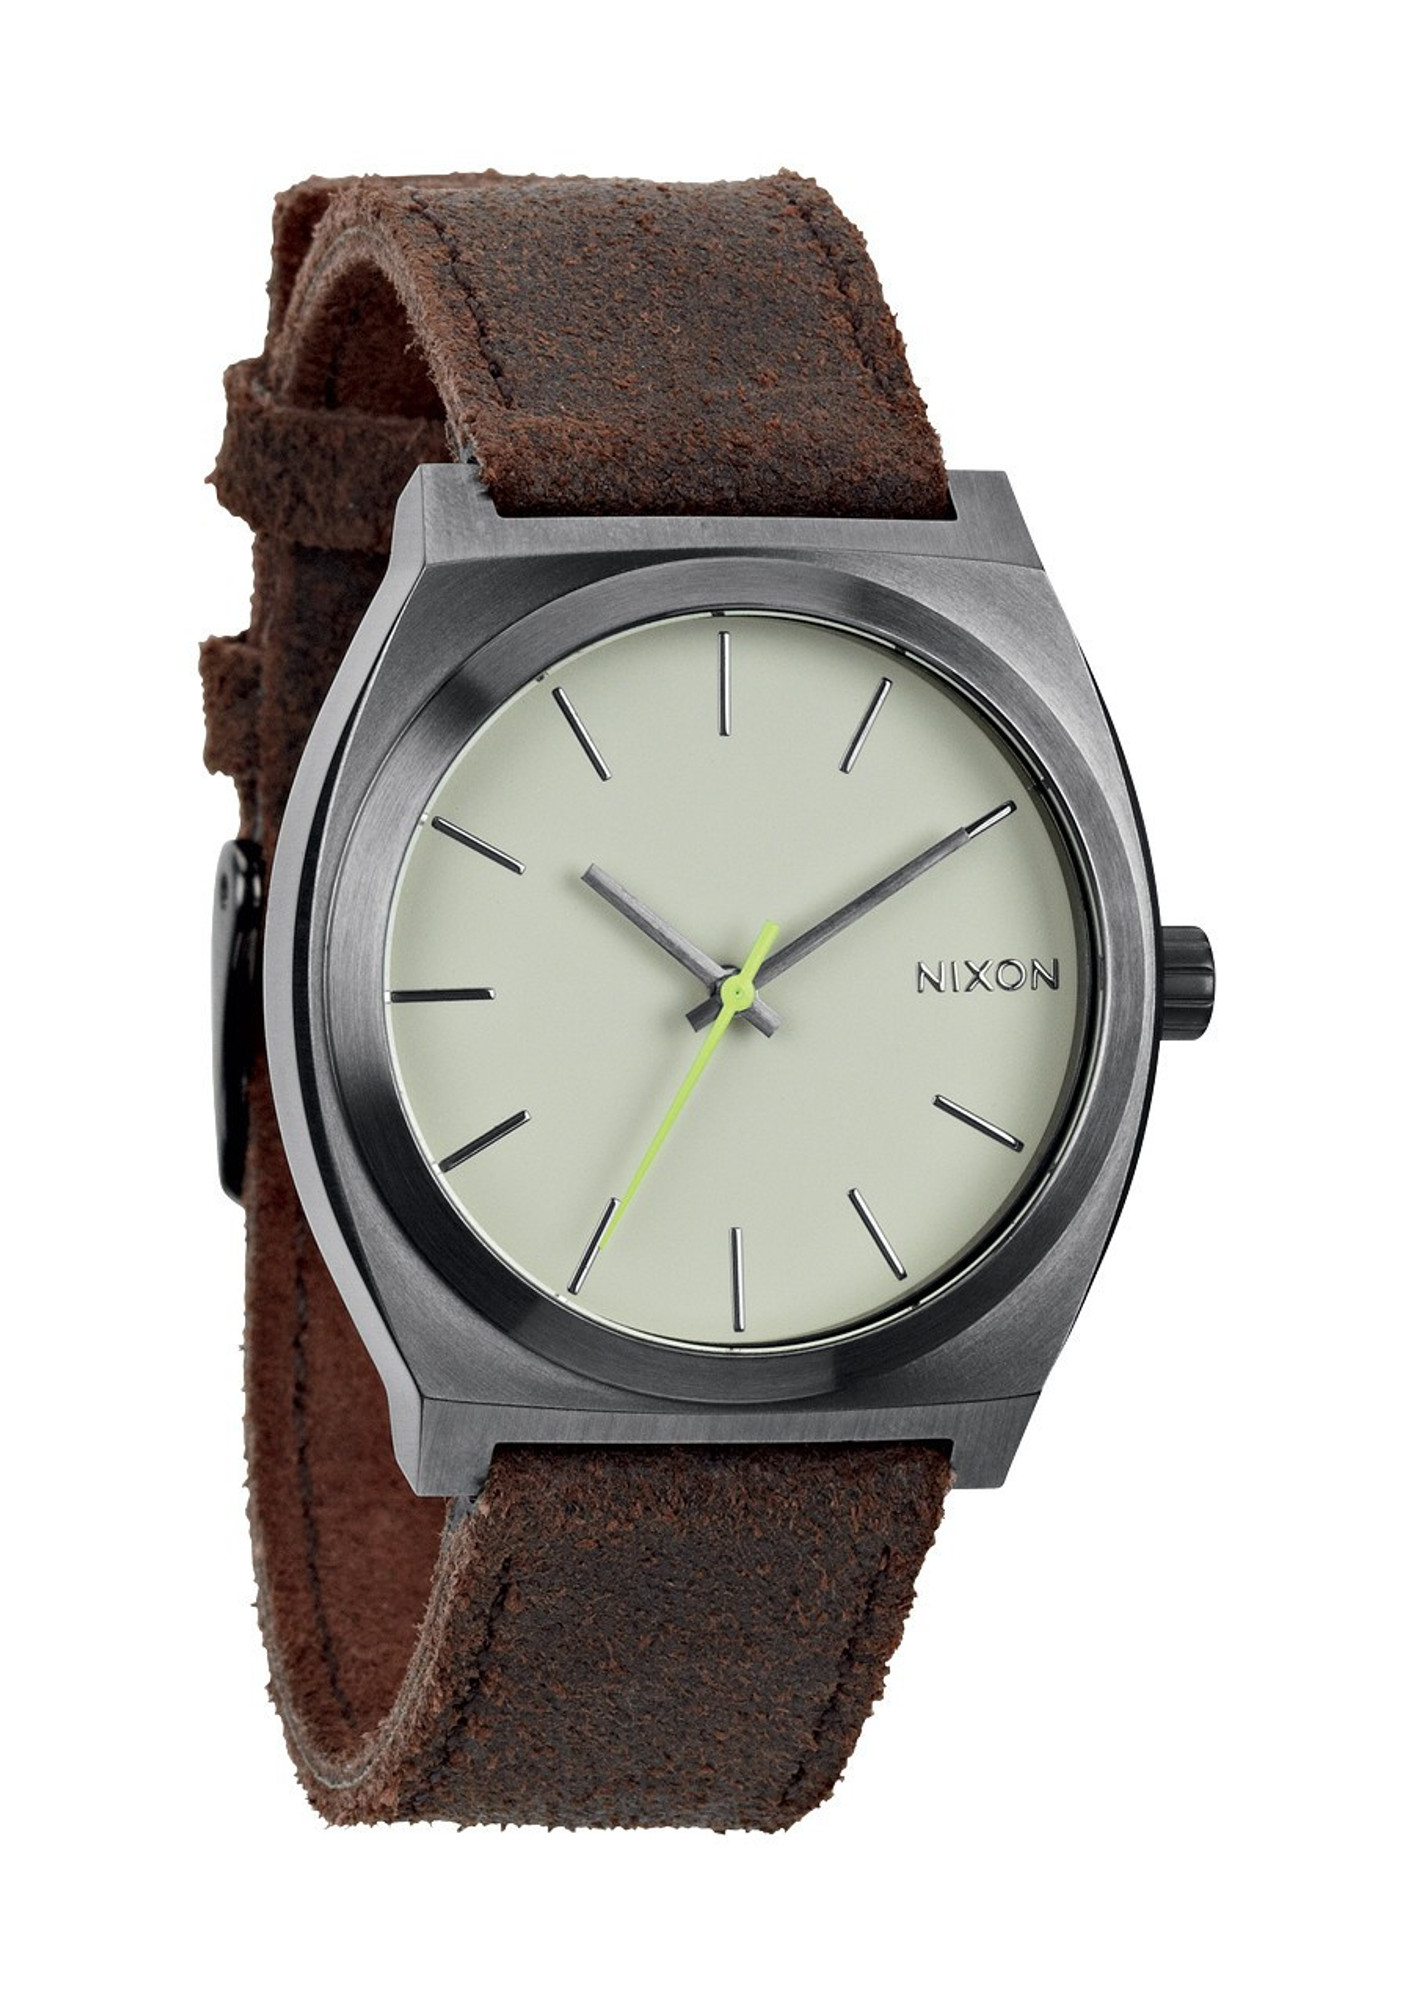 NIXON The Time Teller Uhr Gunmetal Braun A045 1388